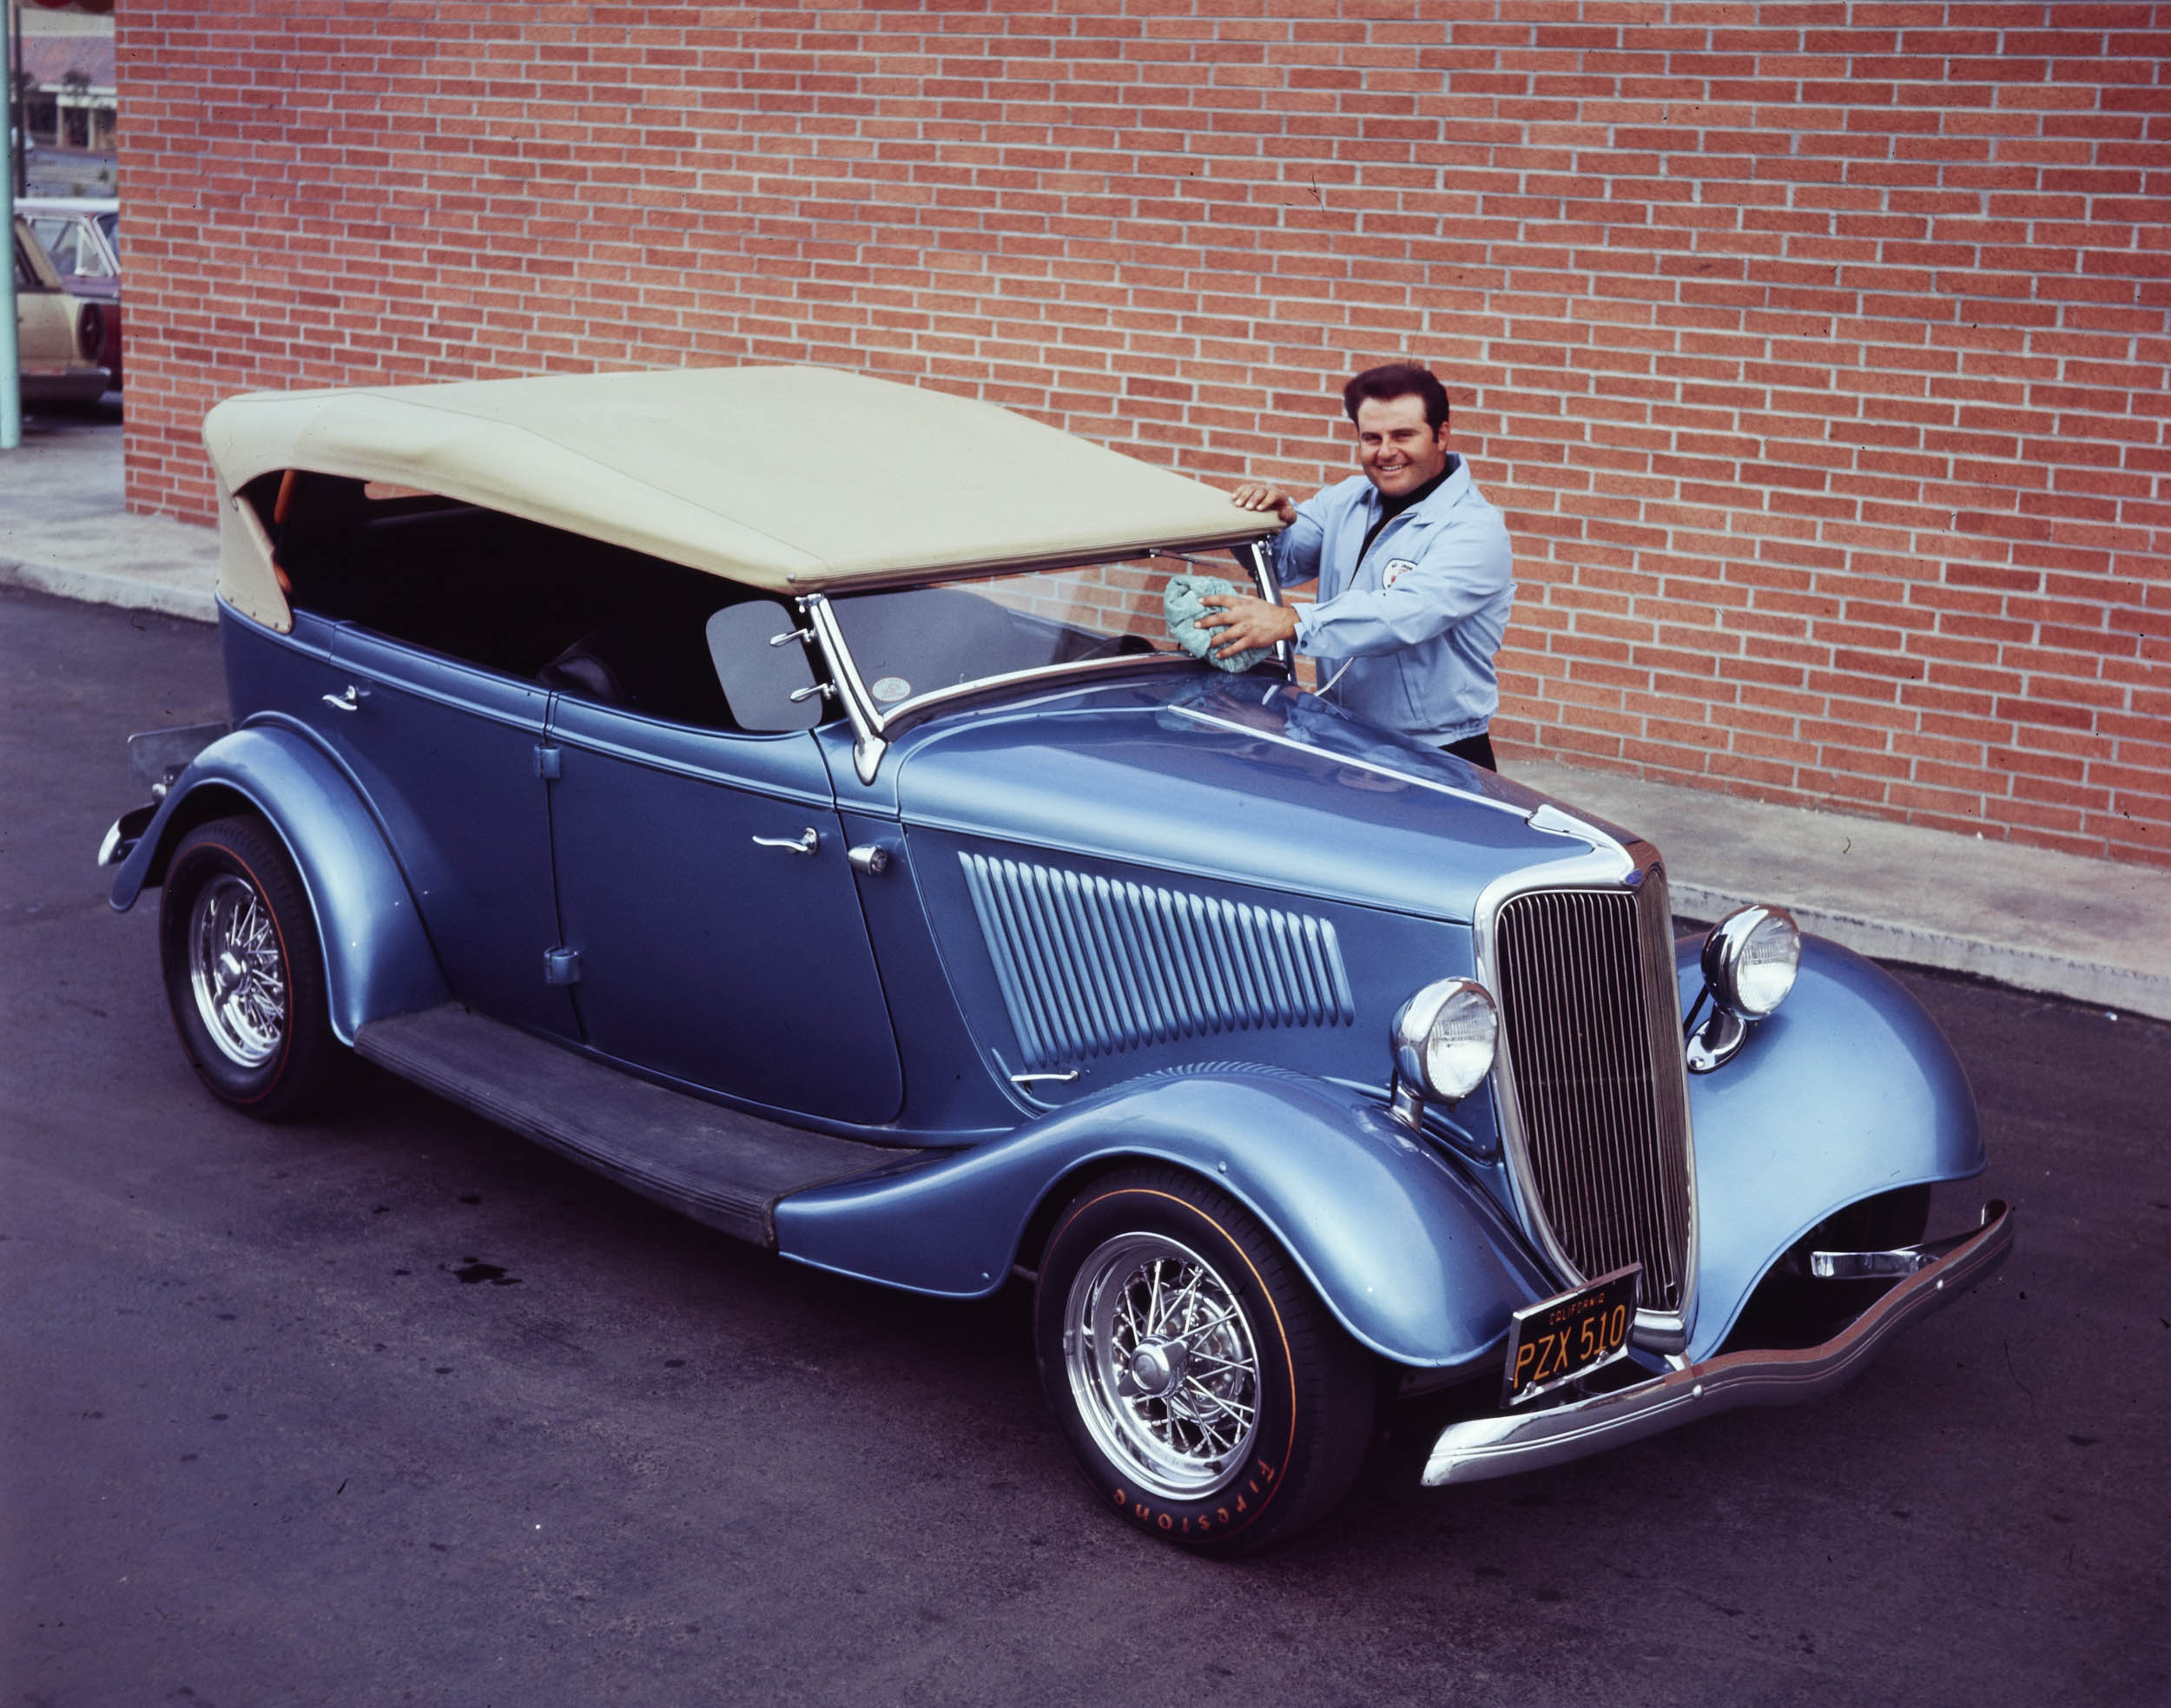 Olds-powered 1934 Ford phaeton